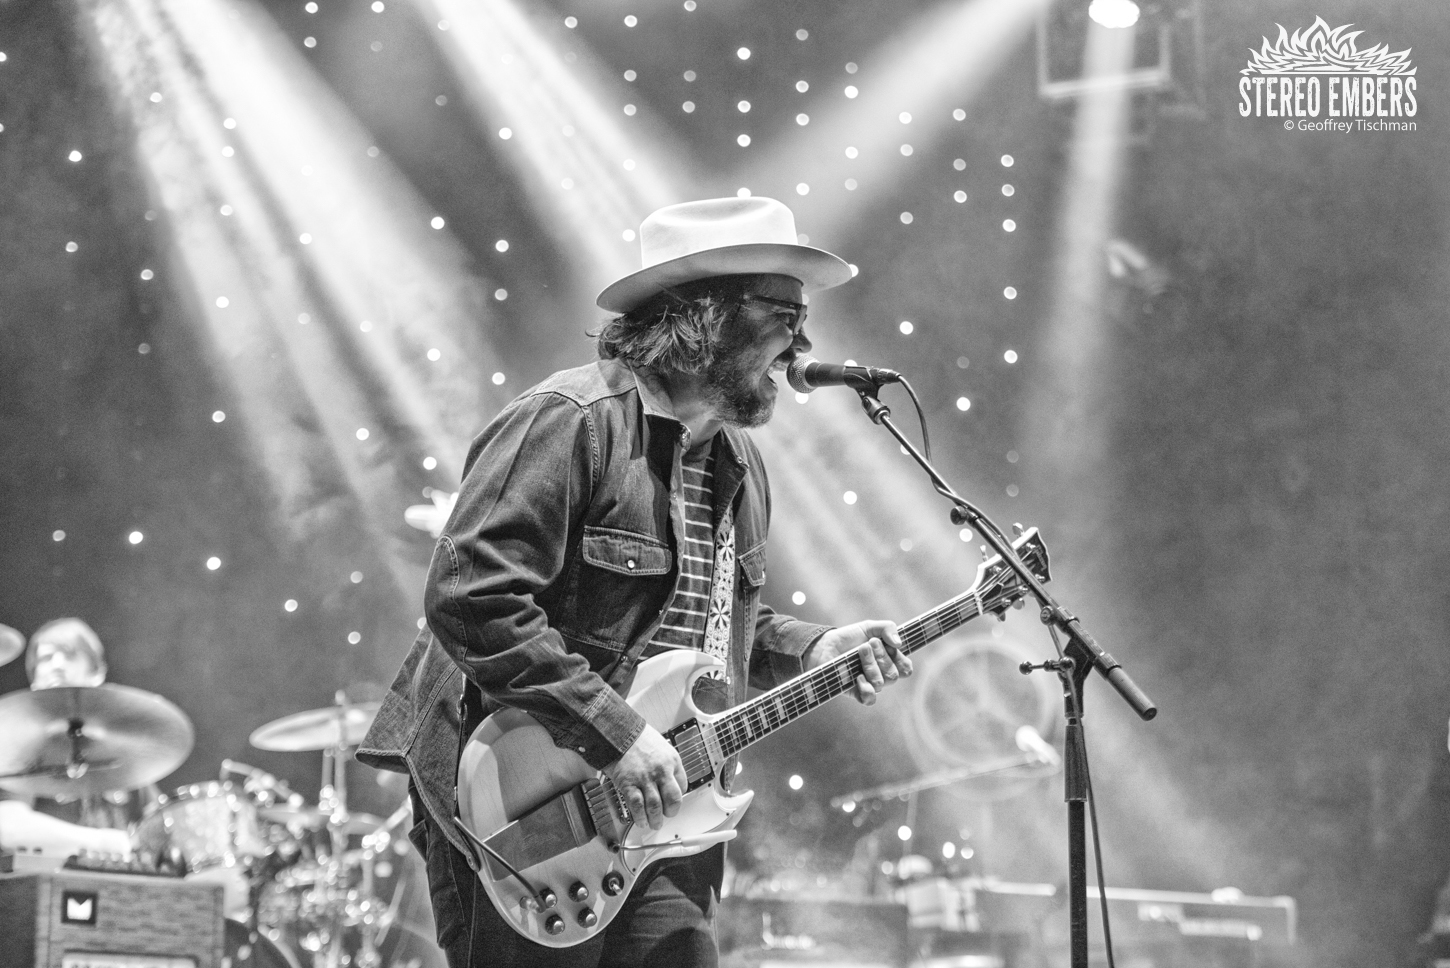 The Star Wars Tour Continues: Wilco Live In New York At The Capitol Theatre